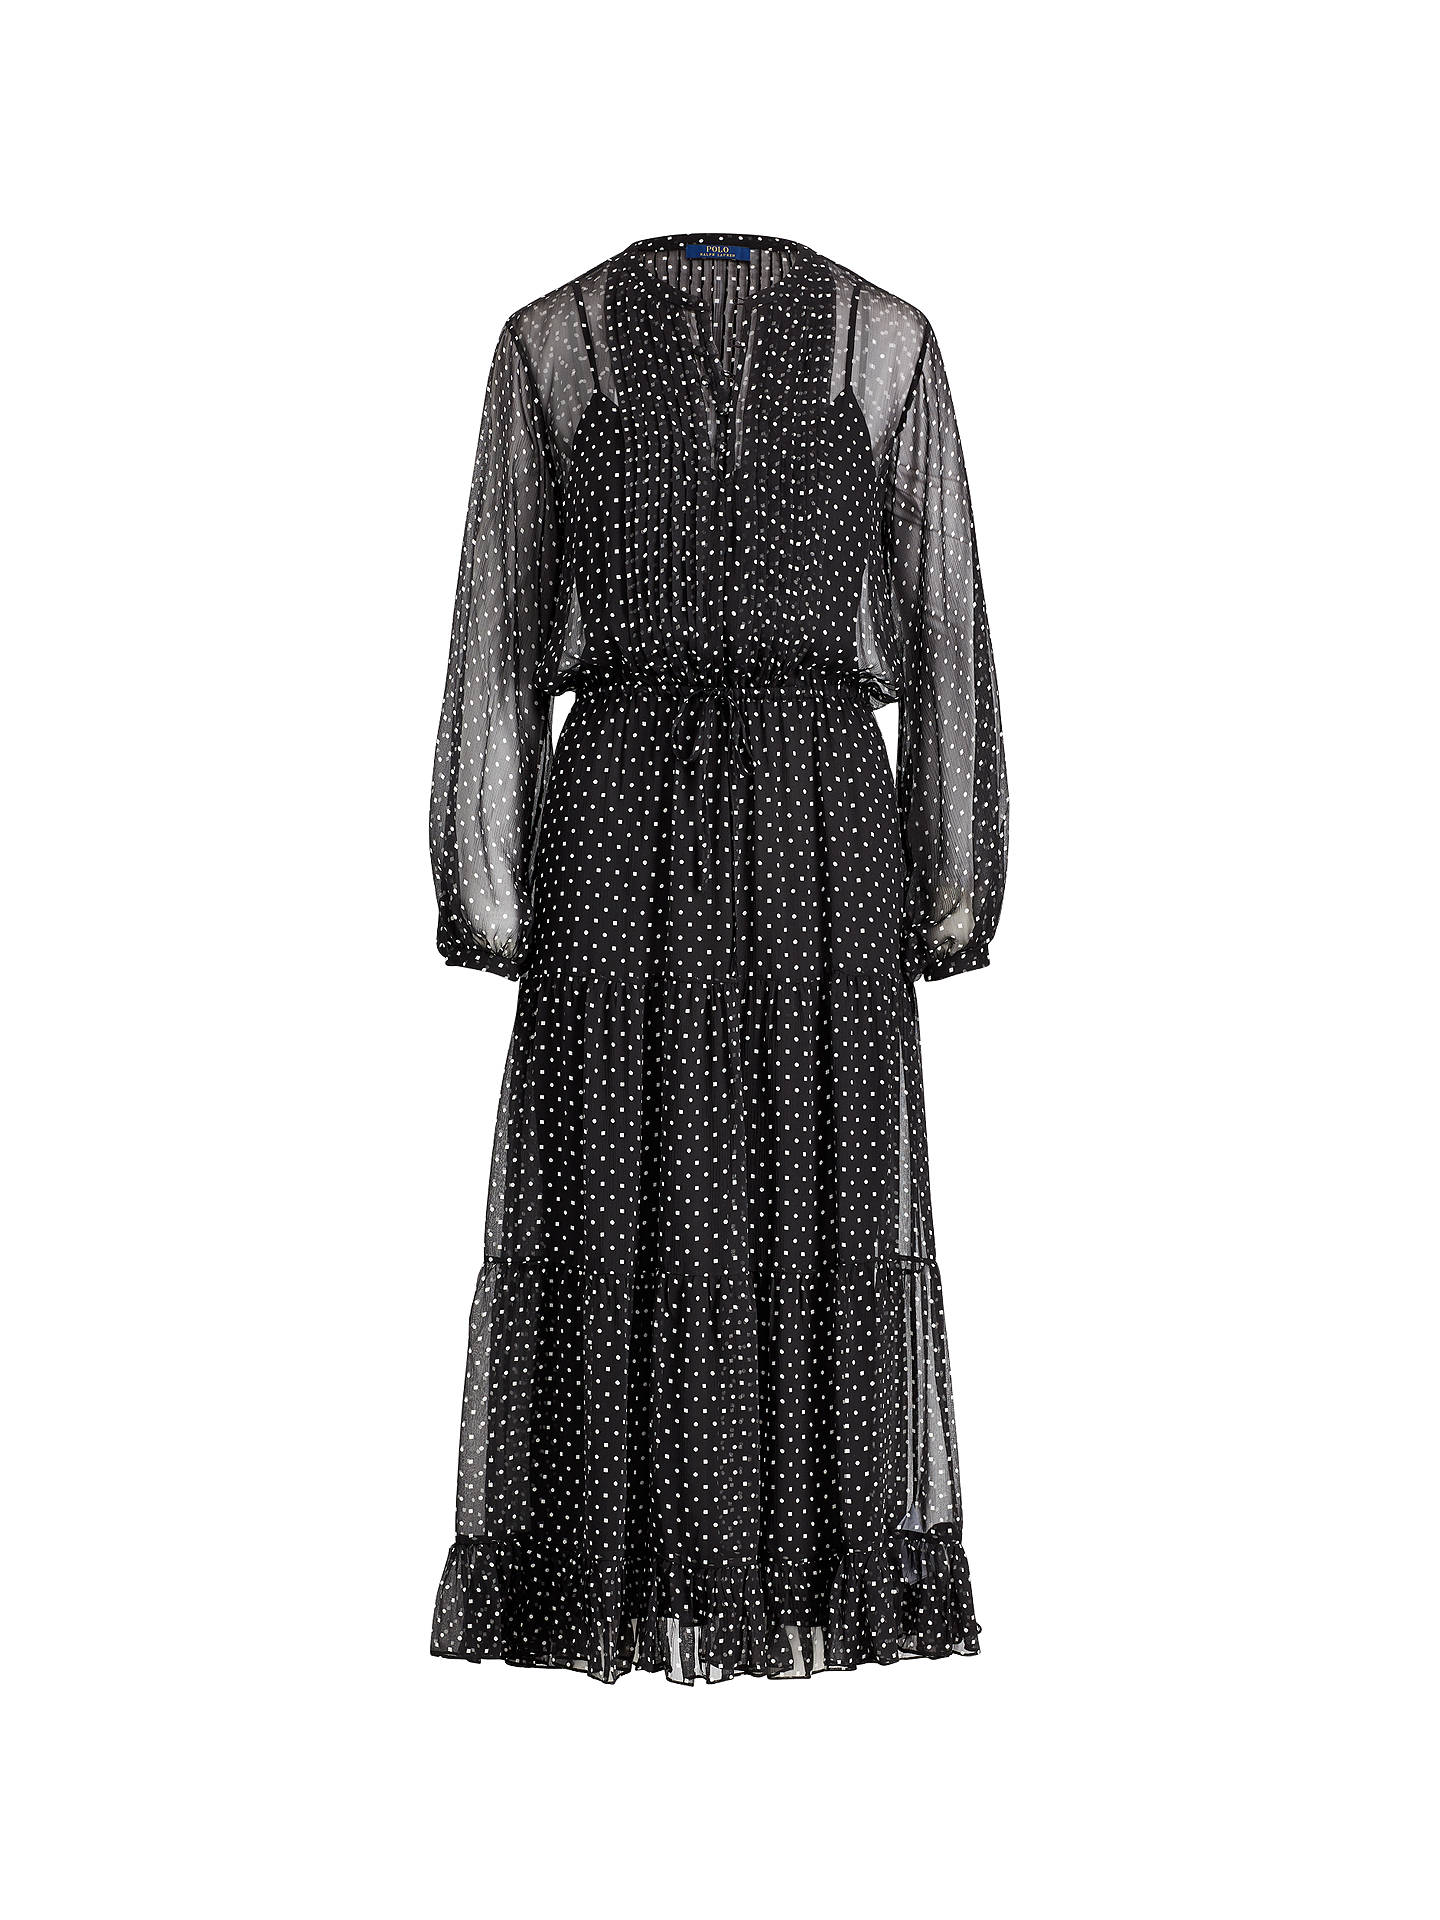 BuyPolo Ralph Lauren Square Dot Print Silk Dress, Black, 8 Online at johnlewis.com